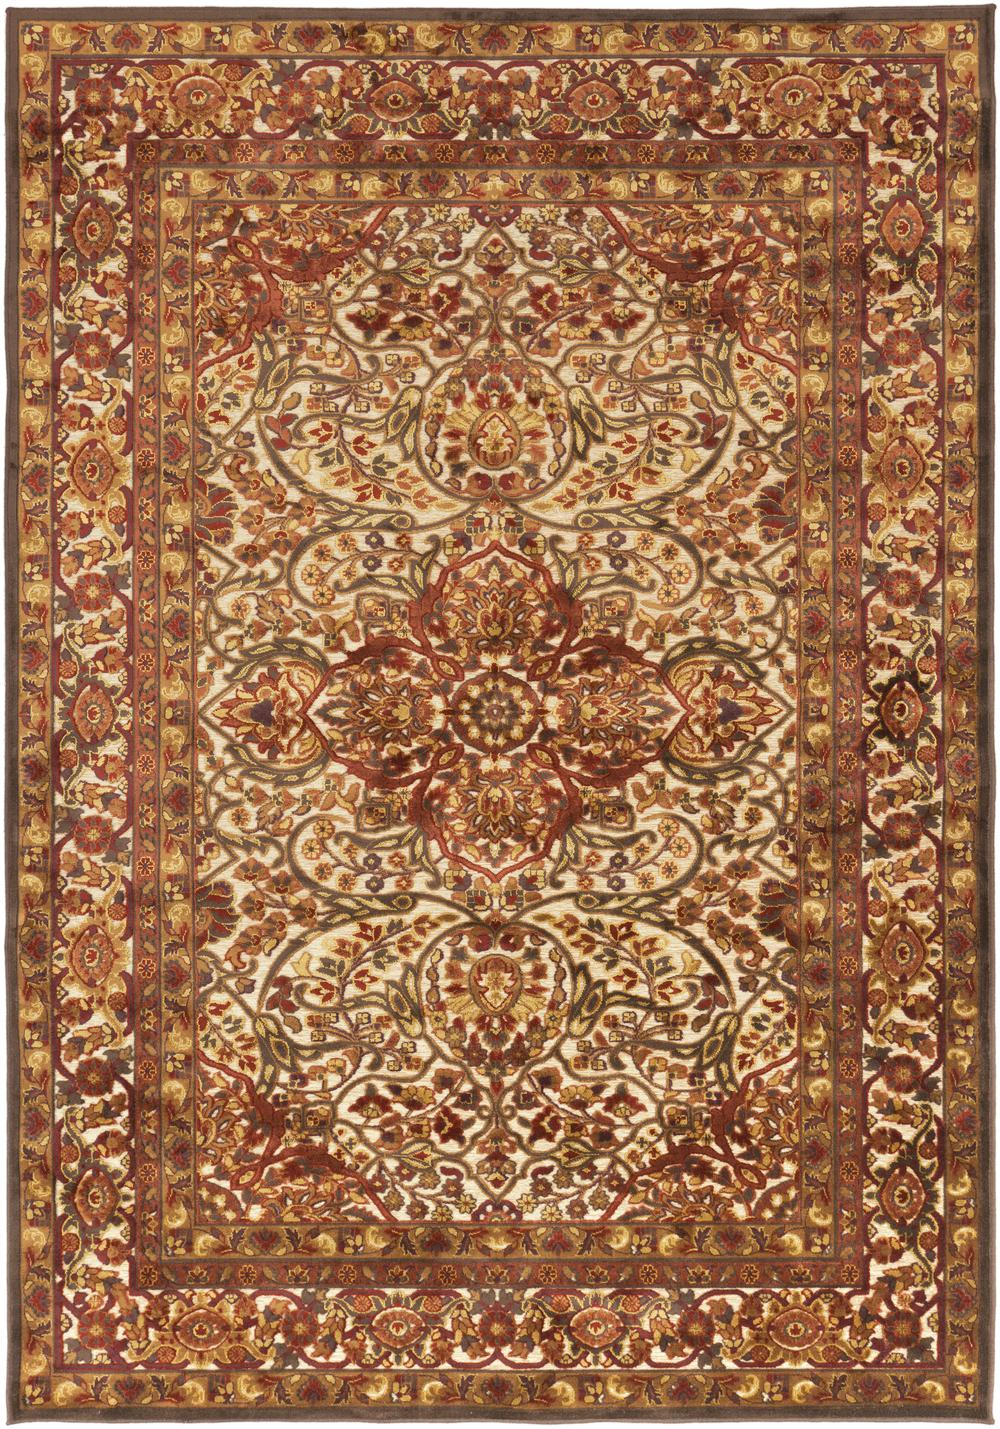 Surya Basilica Bsl7200 Orange Area Rug Free Shipping